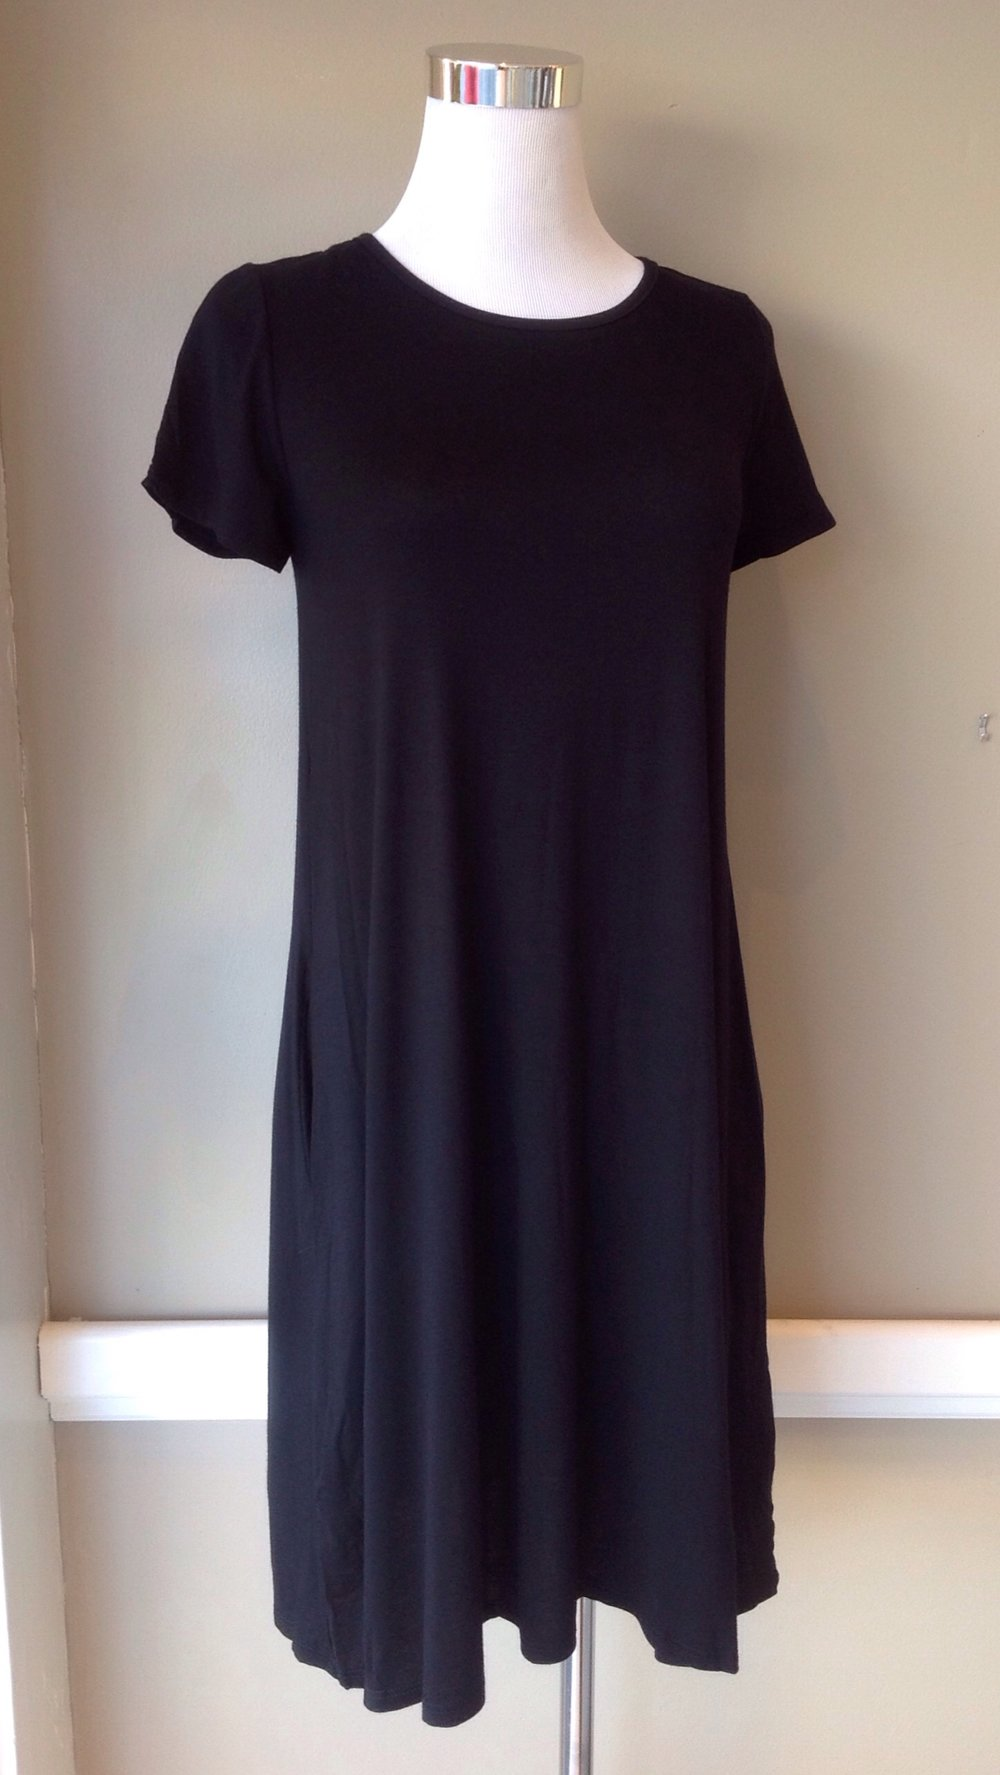 Black short sleeve t-shirt dress with side pockets, $34